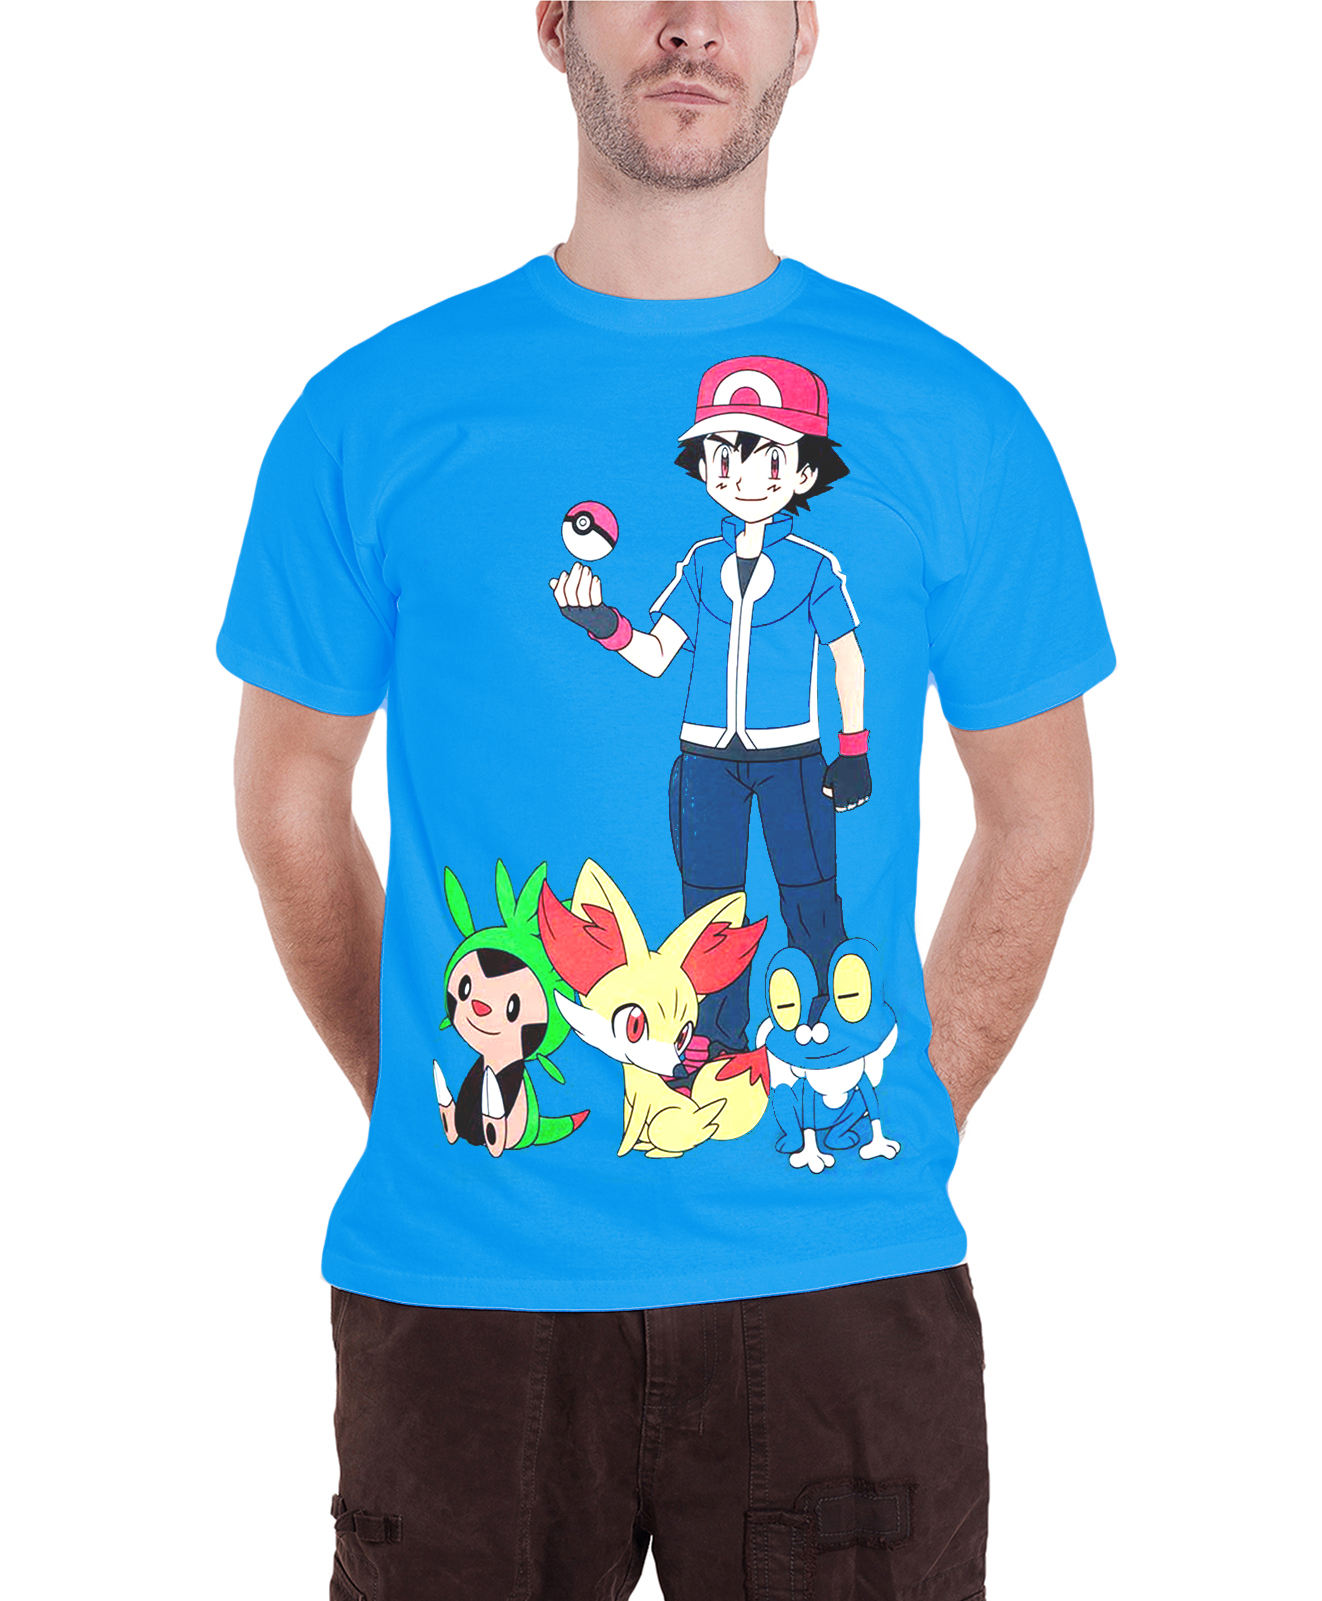 ketchum men 2018 online shopping for popular & hot ash ketchum costume from novelty & special use, boys costumes, girls costumes, anime costumes and more related ash ketchum costume like adult ash ketchum, ash ketchum adult, ash ketchum xy costume, ash ketchum costume xy.